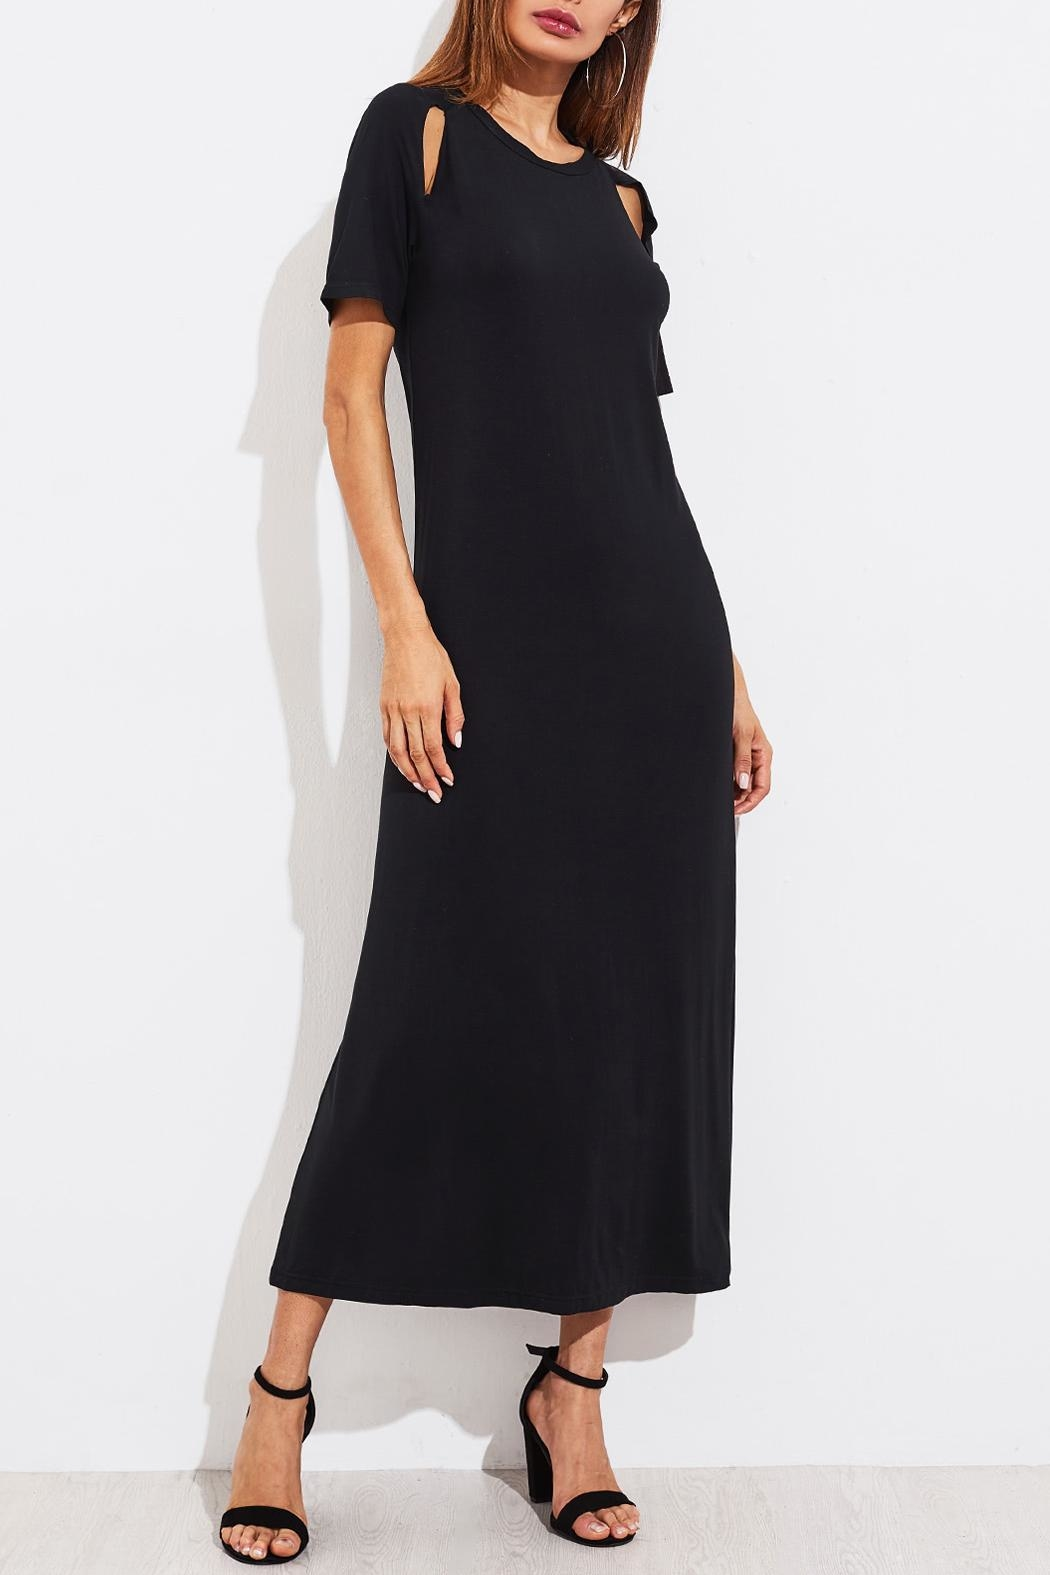 House of Atelier Cutout Black Dress - Side Cropped Image